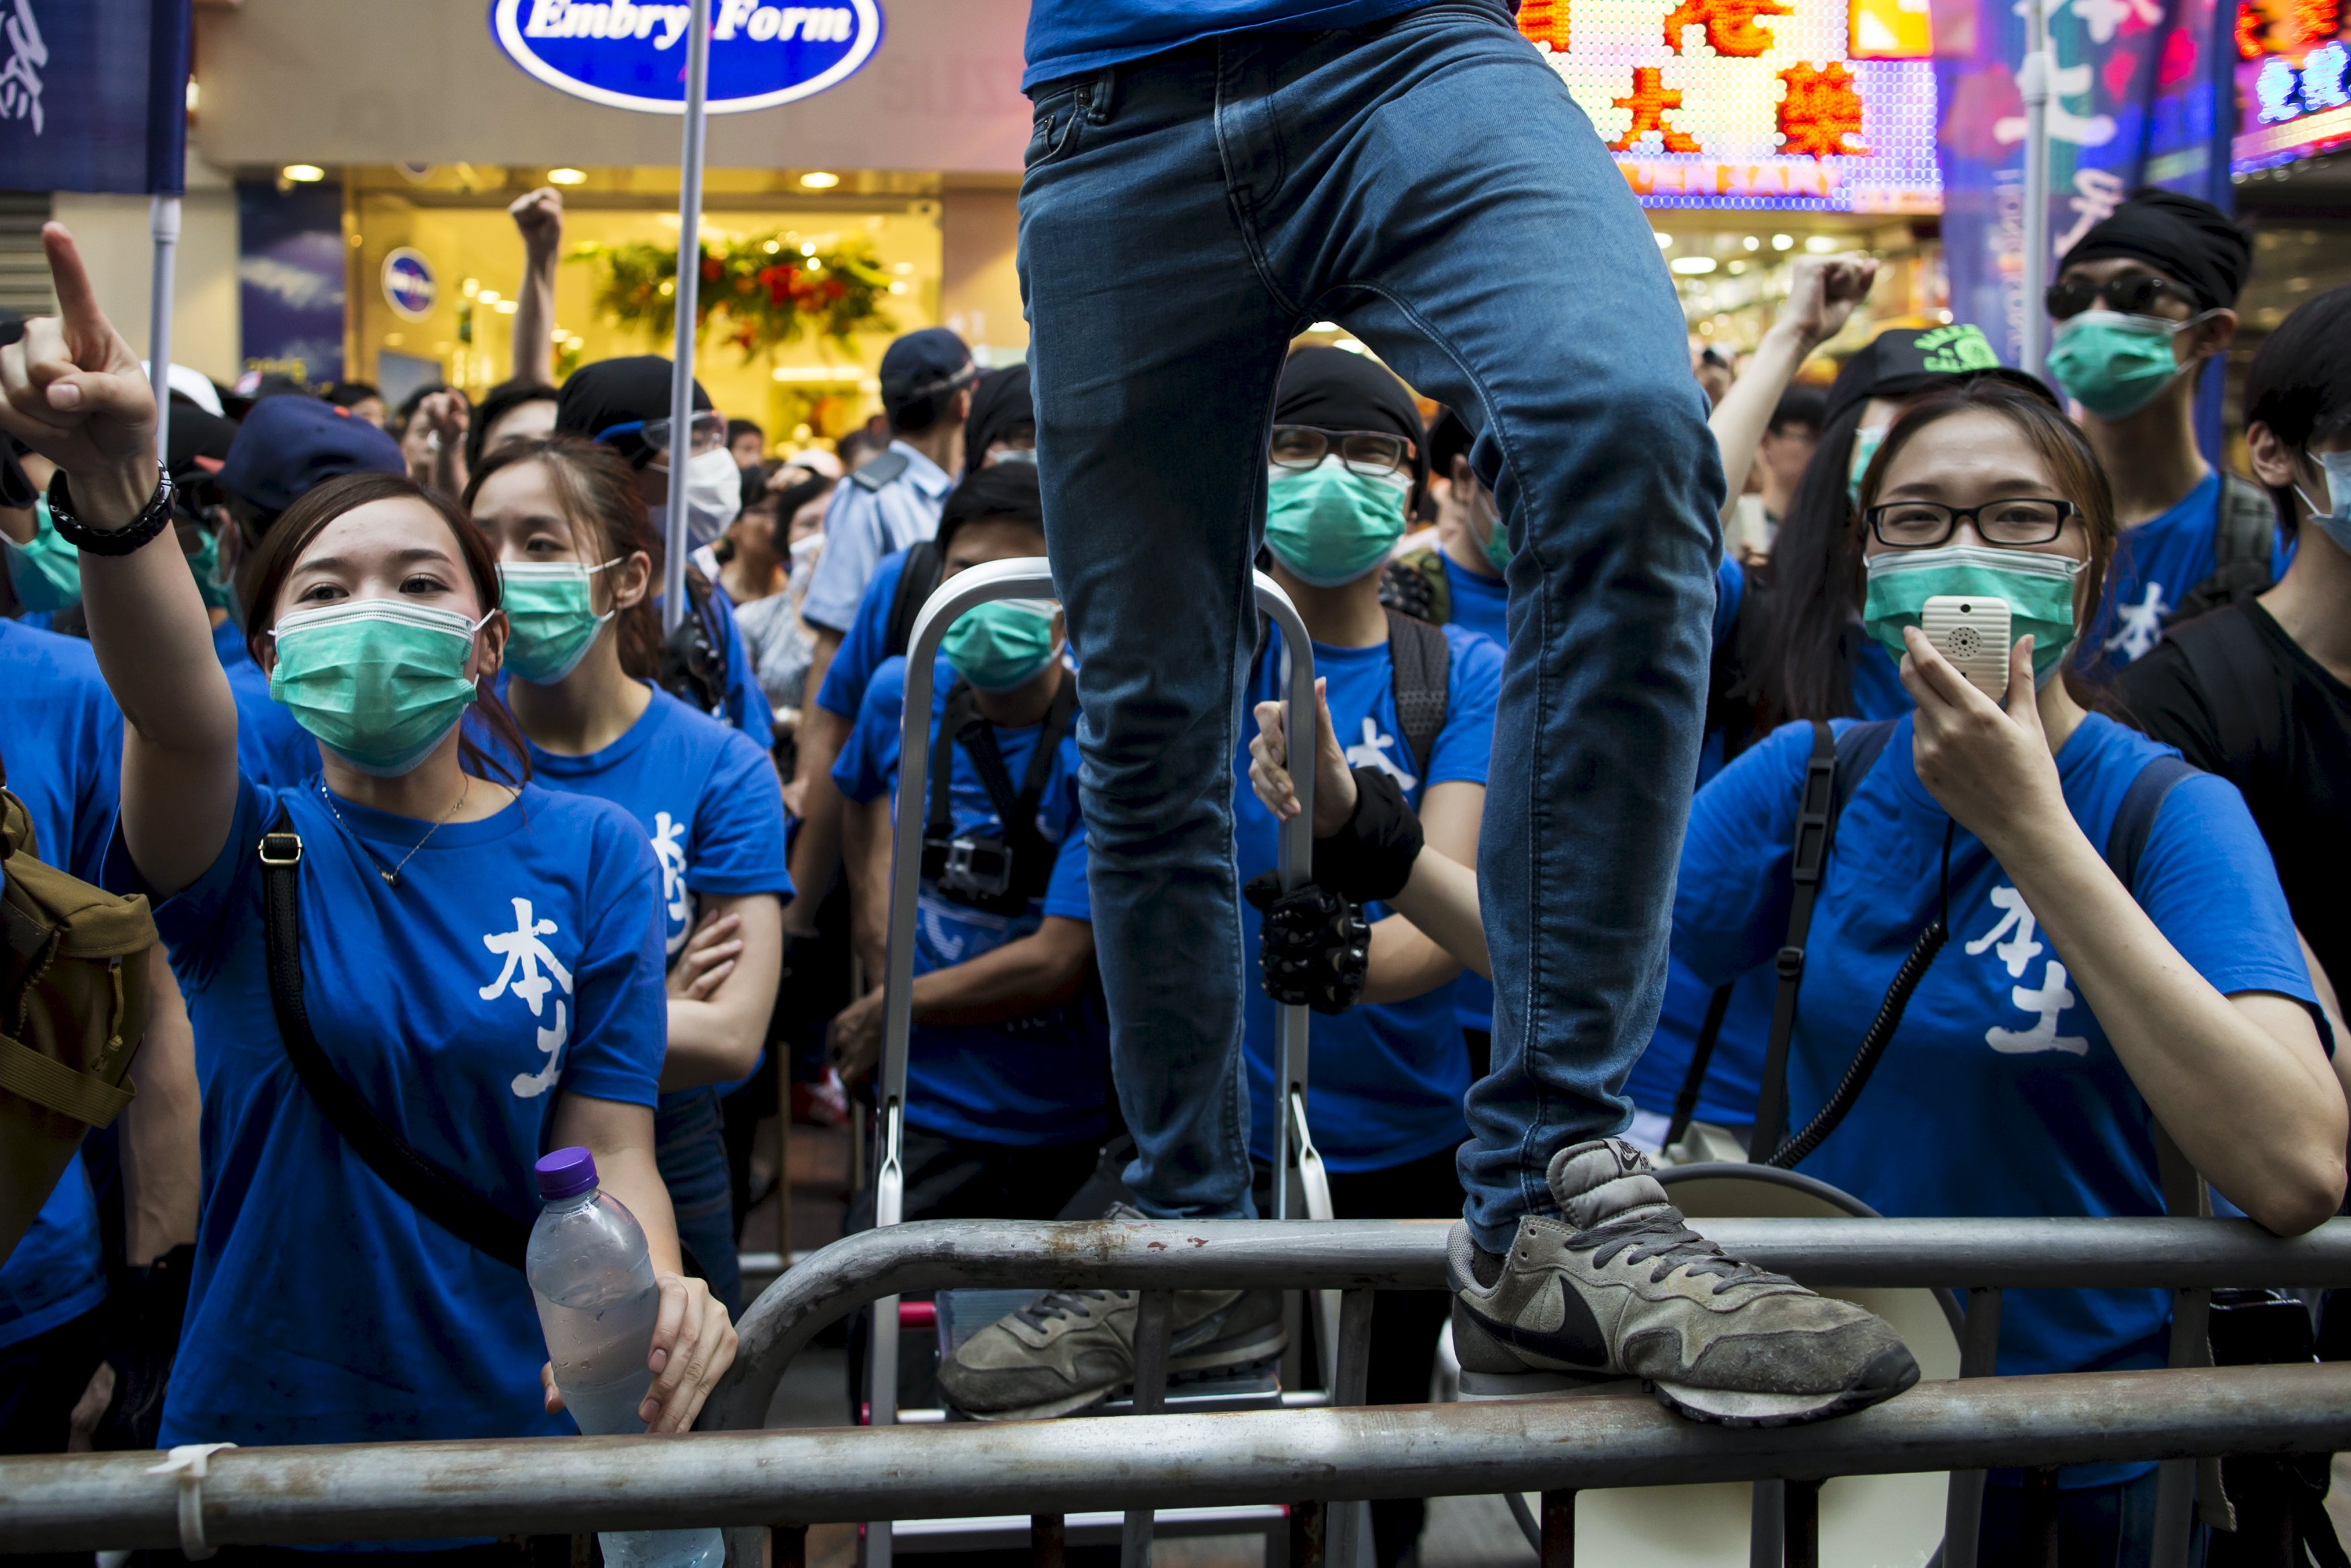 Anti-Beijing demonstrators shout at a pro-China group in Hong Kong's Mong Kok shopping district on July 11.   REUTERS